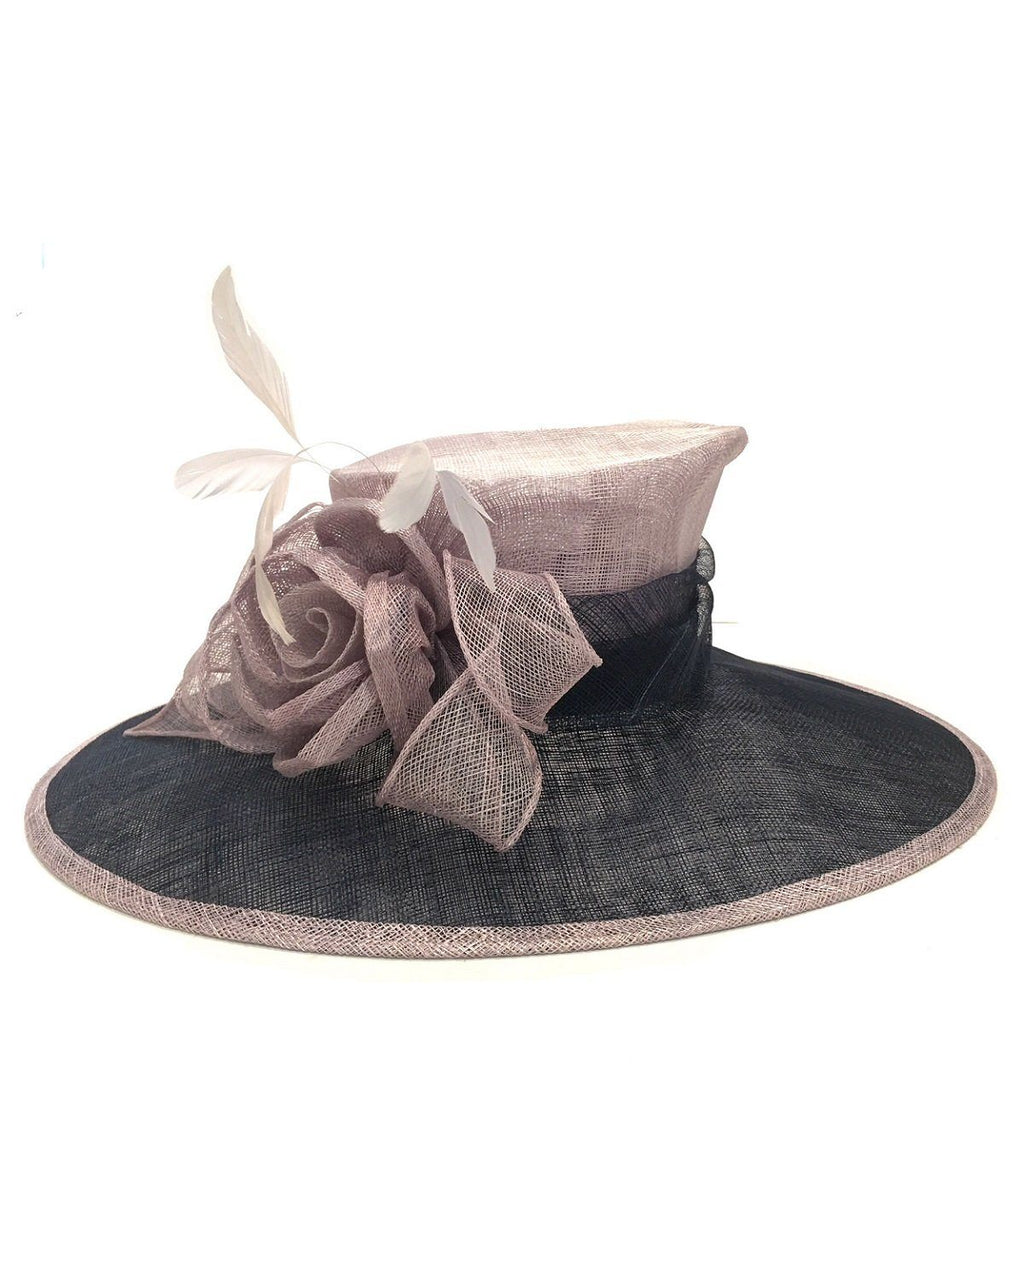 Fine Millinery by August Hat Co Bow & Feather Accented Mesh Straw Hat